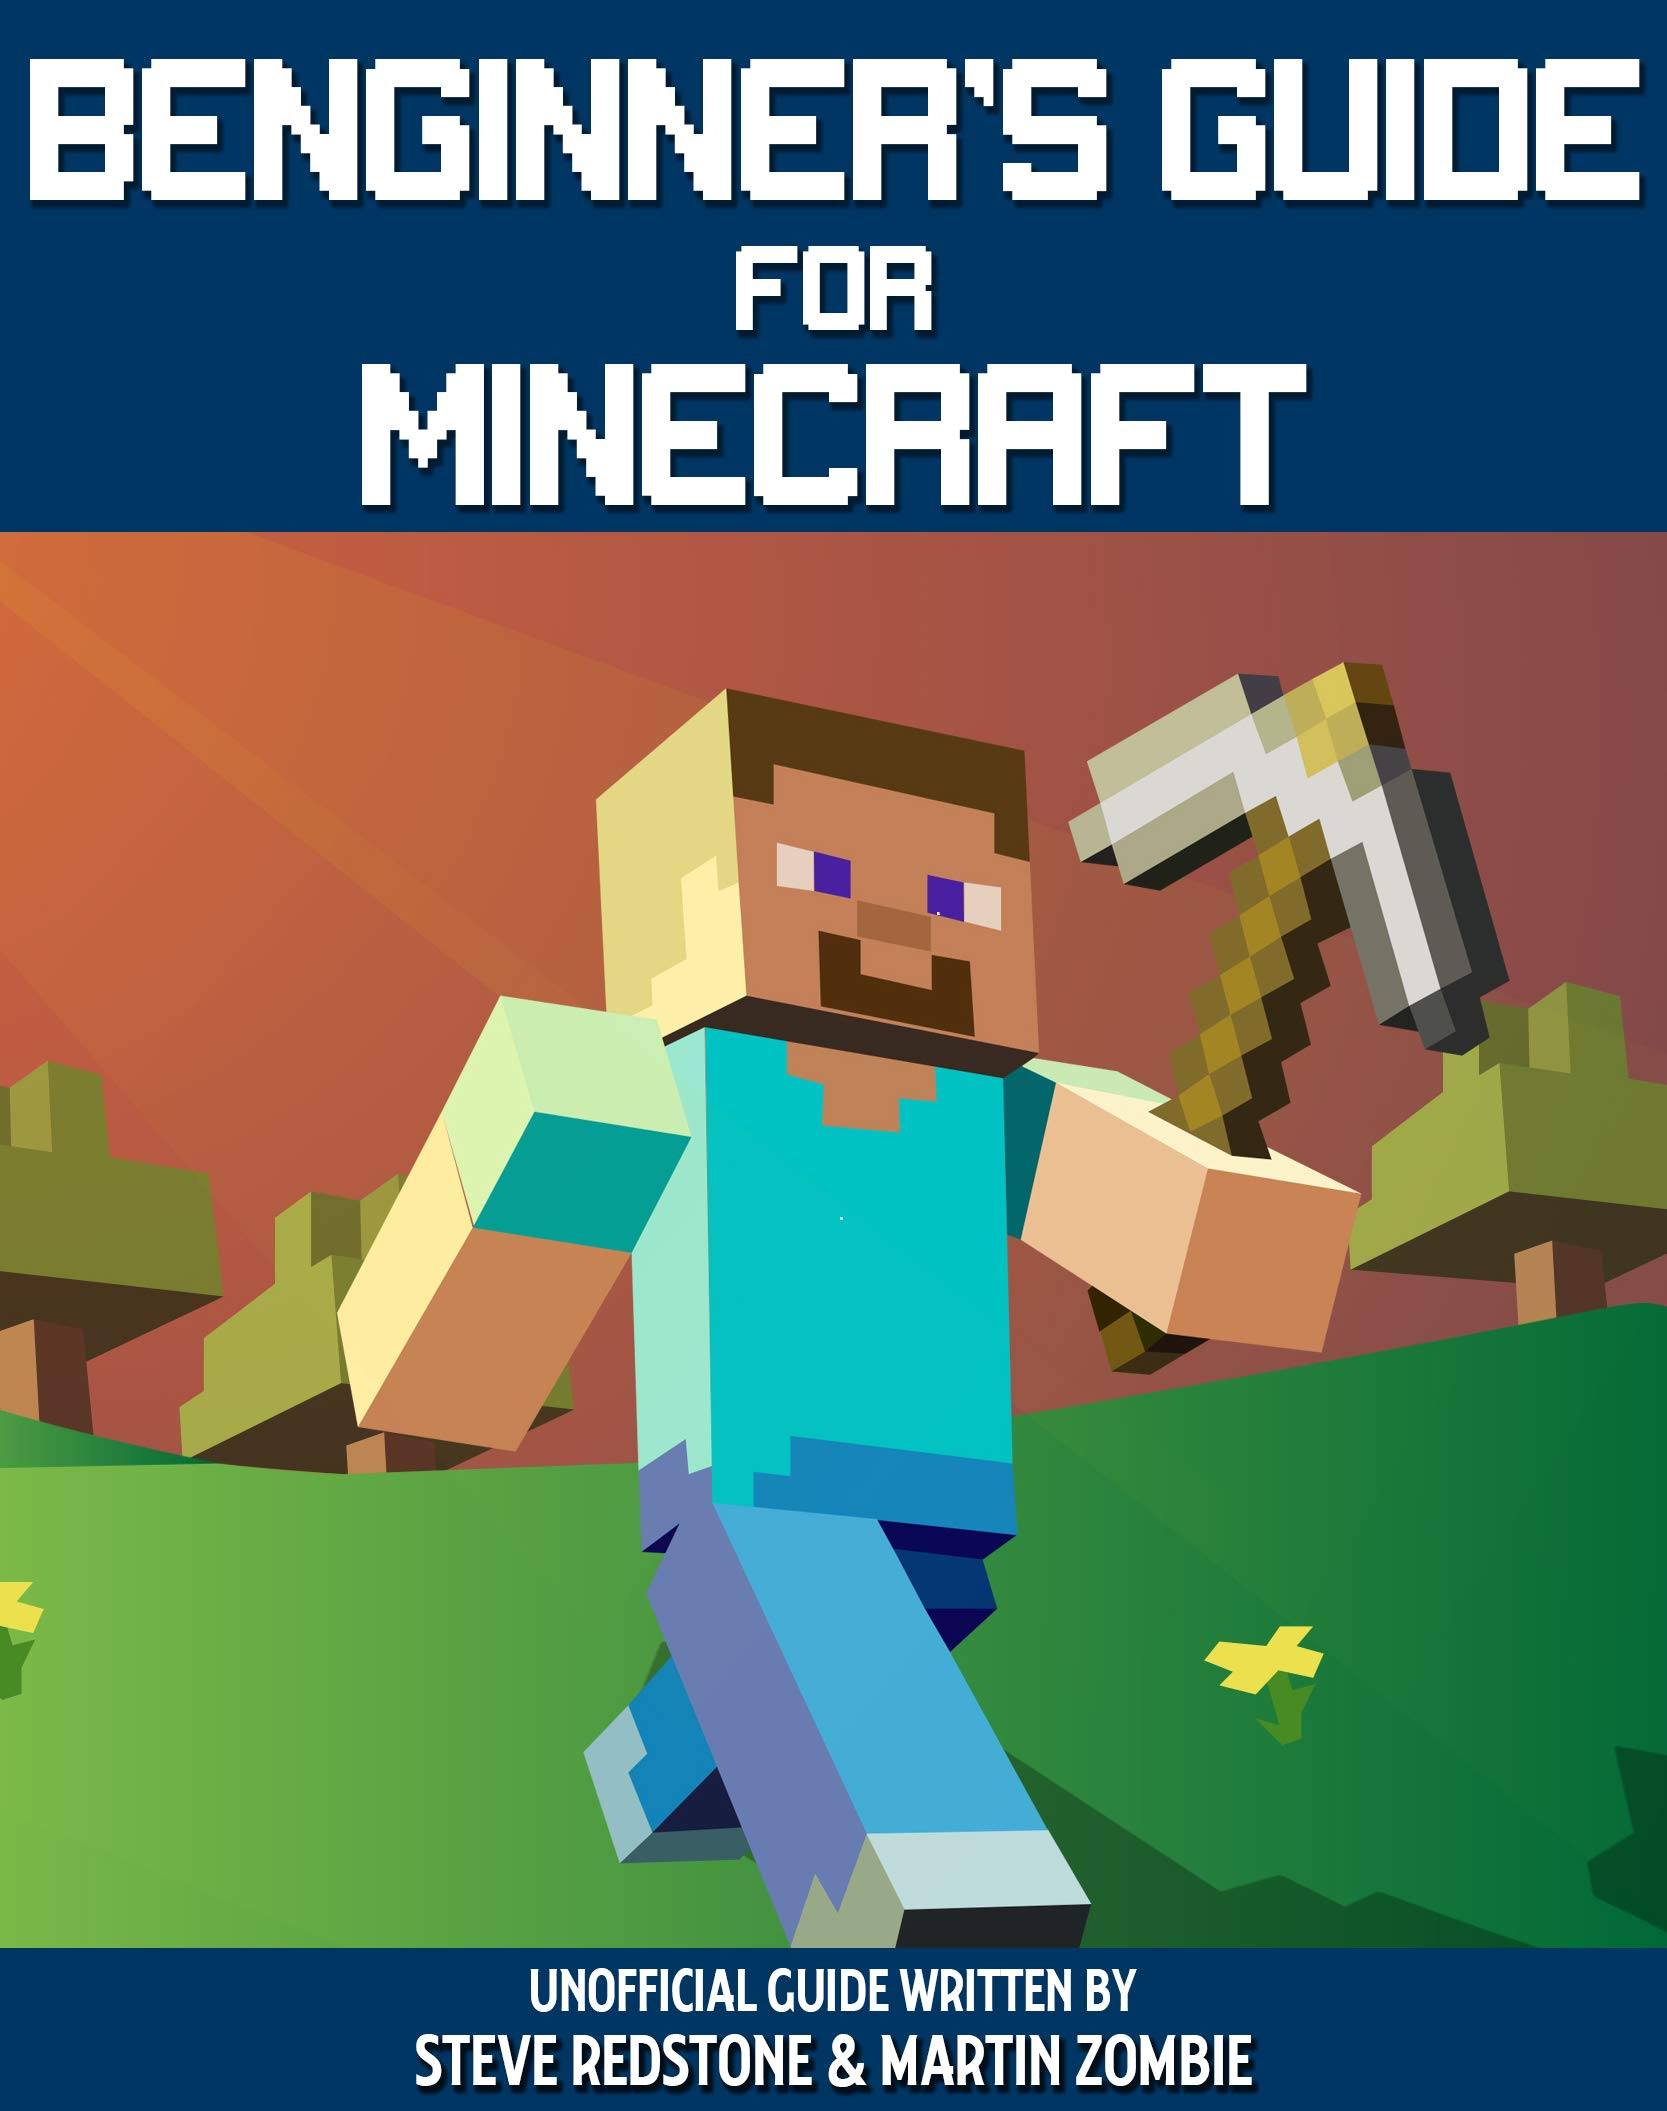 Image OfBeginner's Guide For Minecraft: Unofficial Guide To Building, Exploration, Survival And Crafting. A Minecraft Book With Ea...